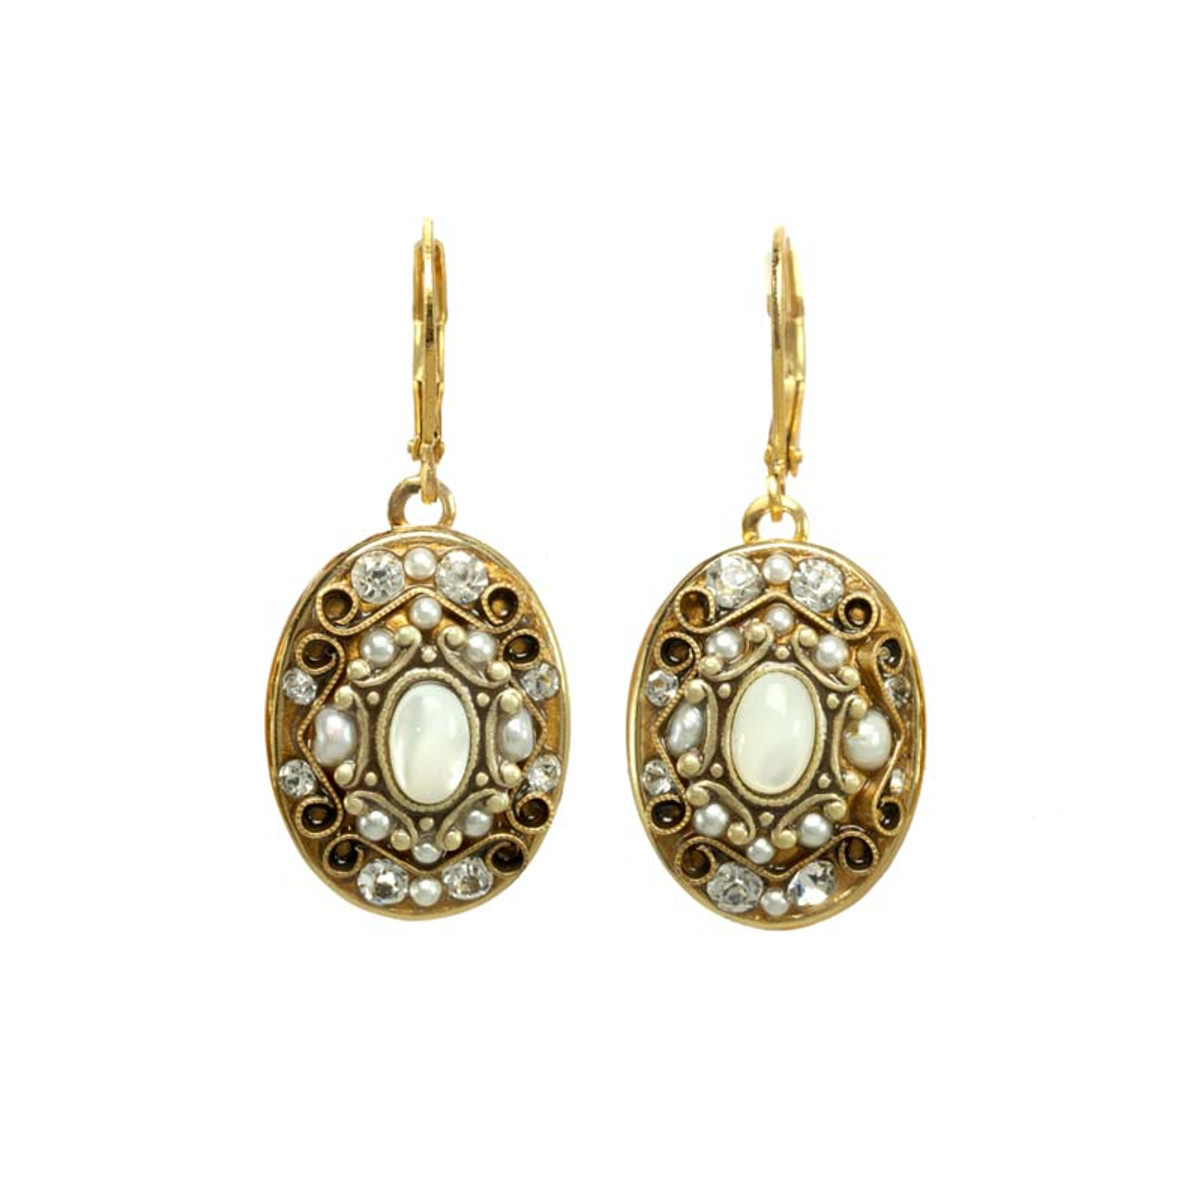 Michal Golan White Earrings Elegante